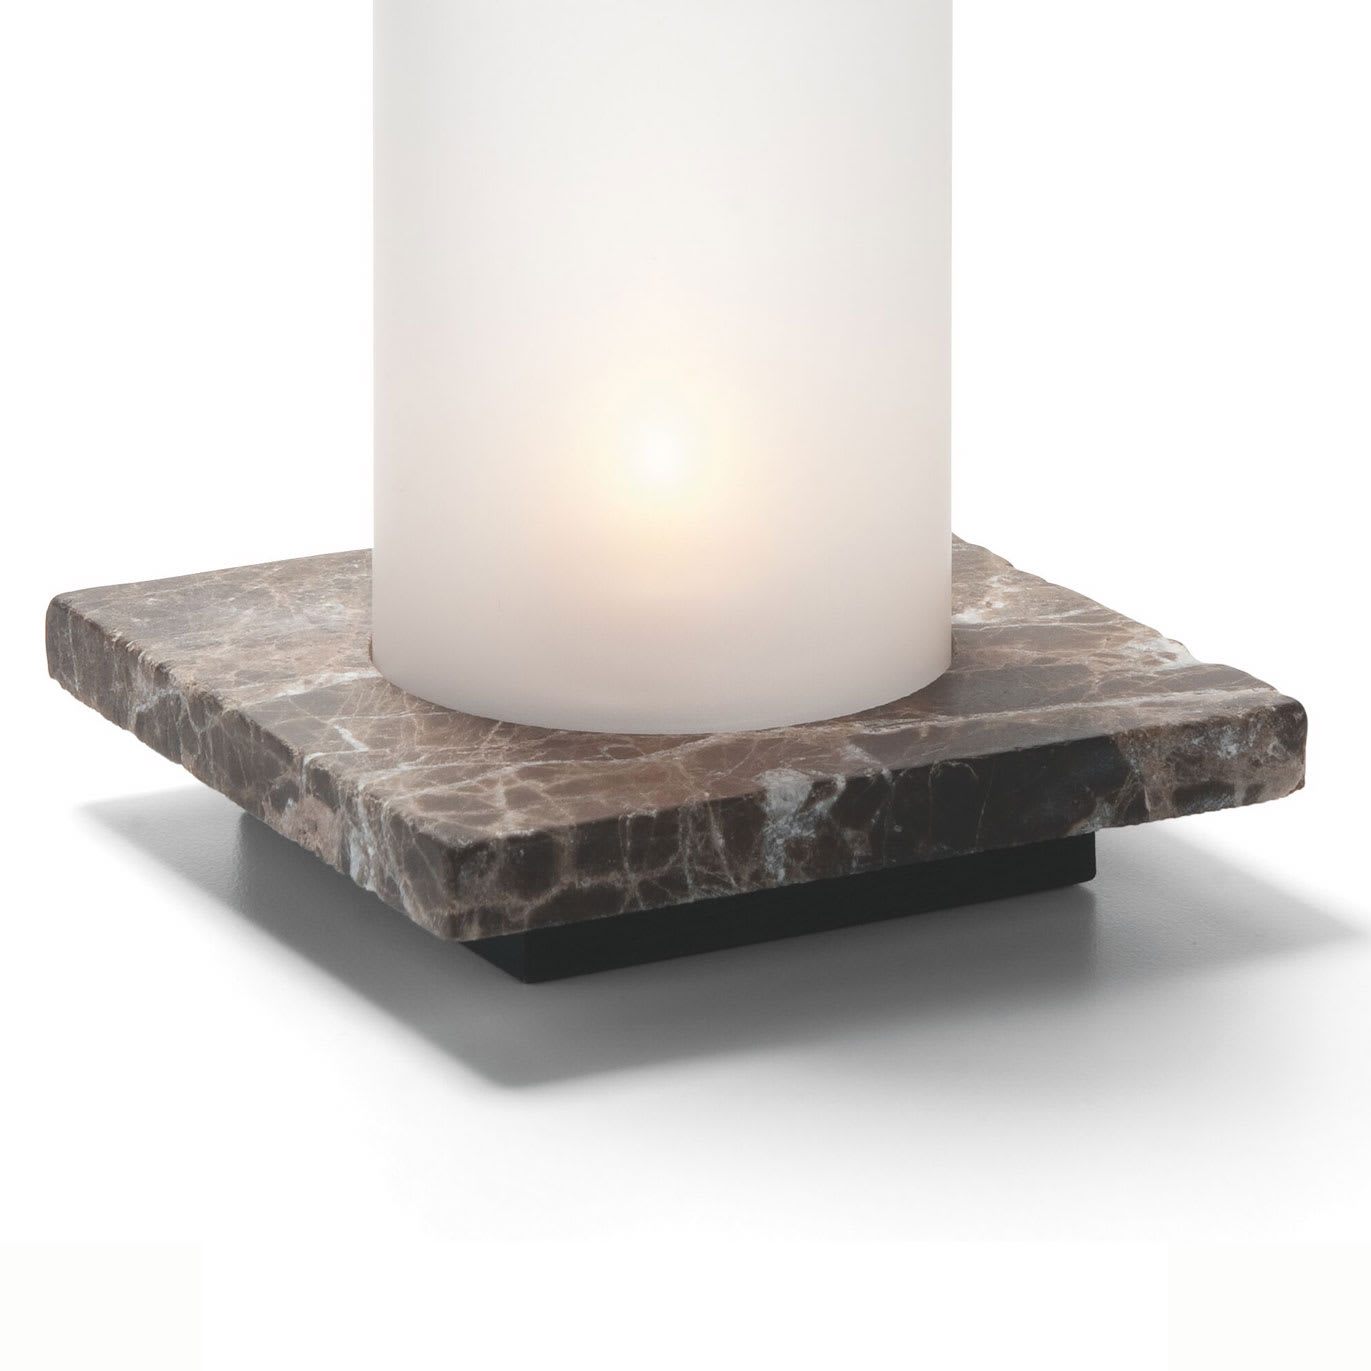 Hollowick ZEN-DEM Square Lamp Base, Single, Stone, Dark Emperador, 4x4.88""